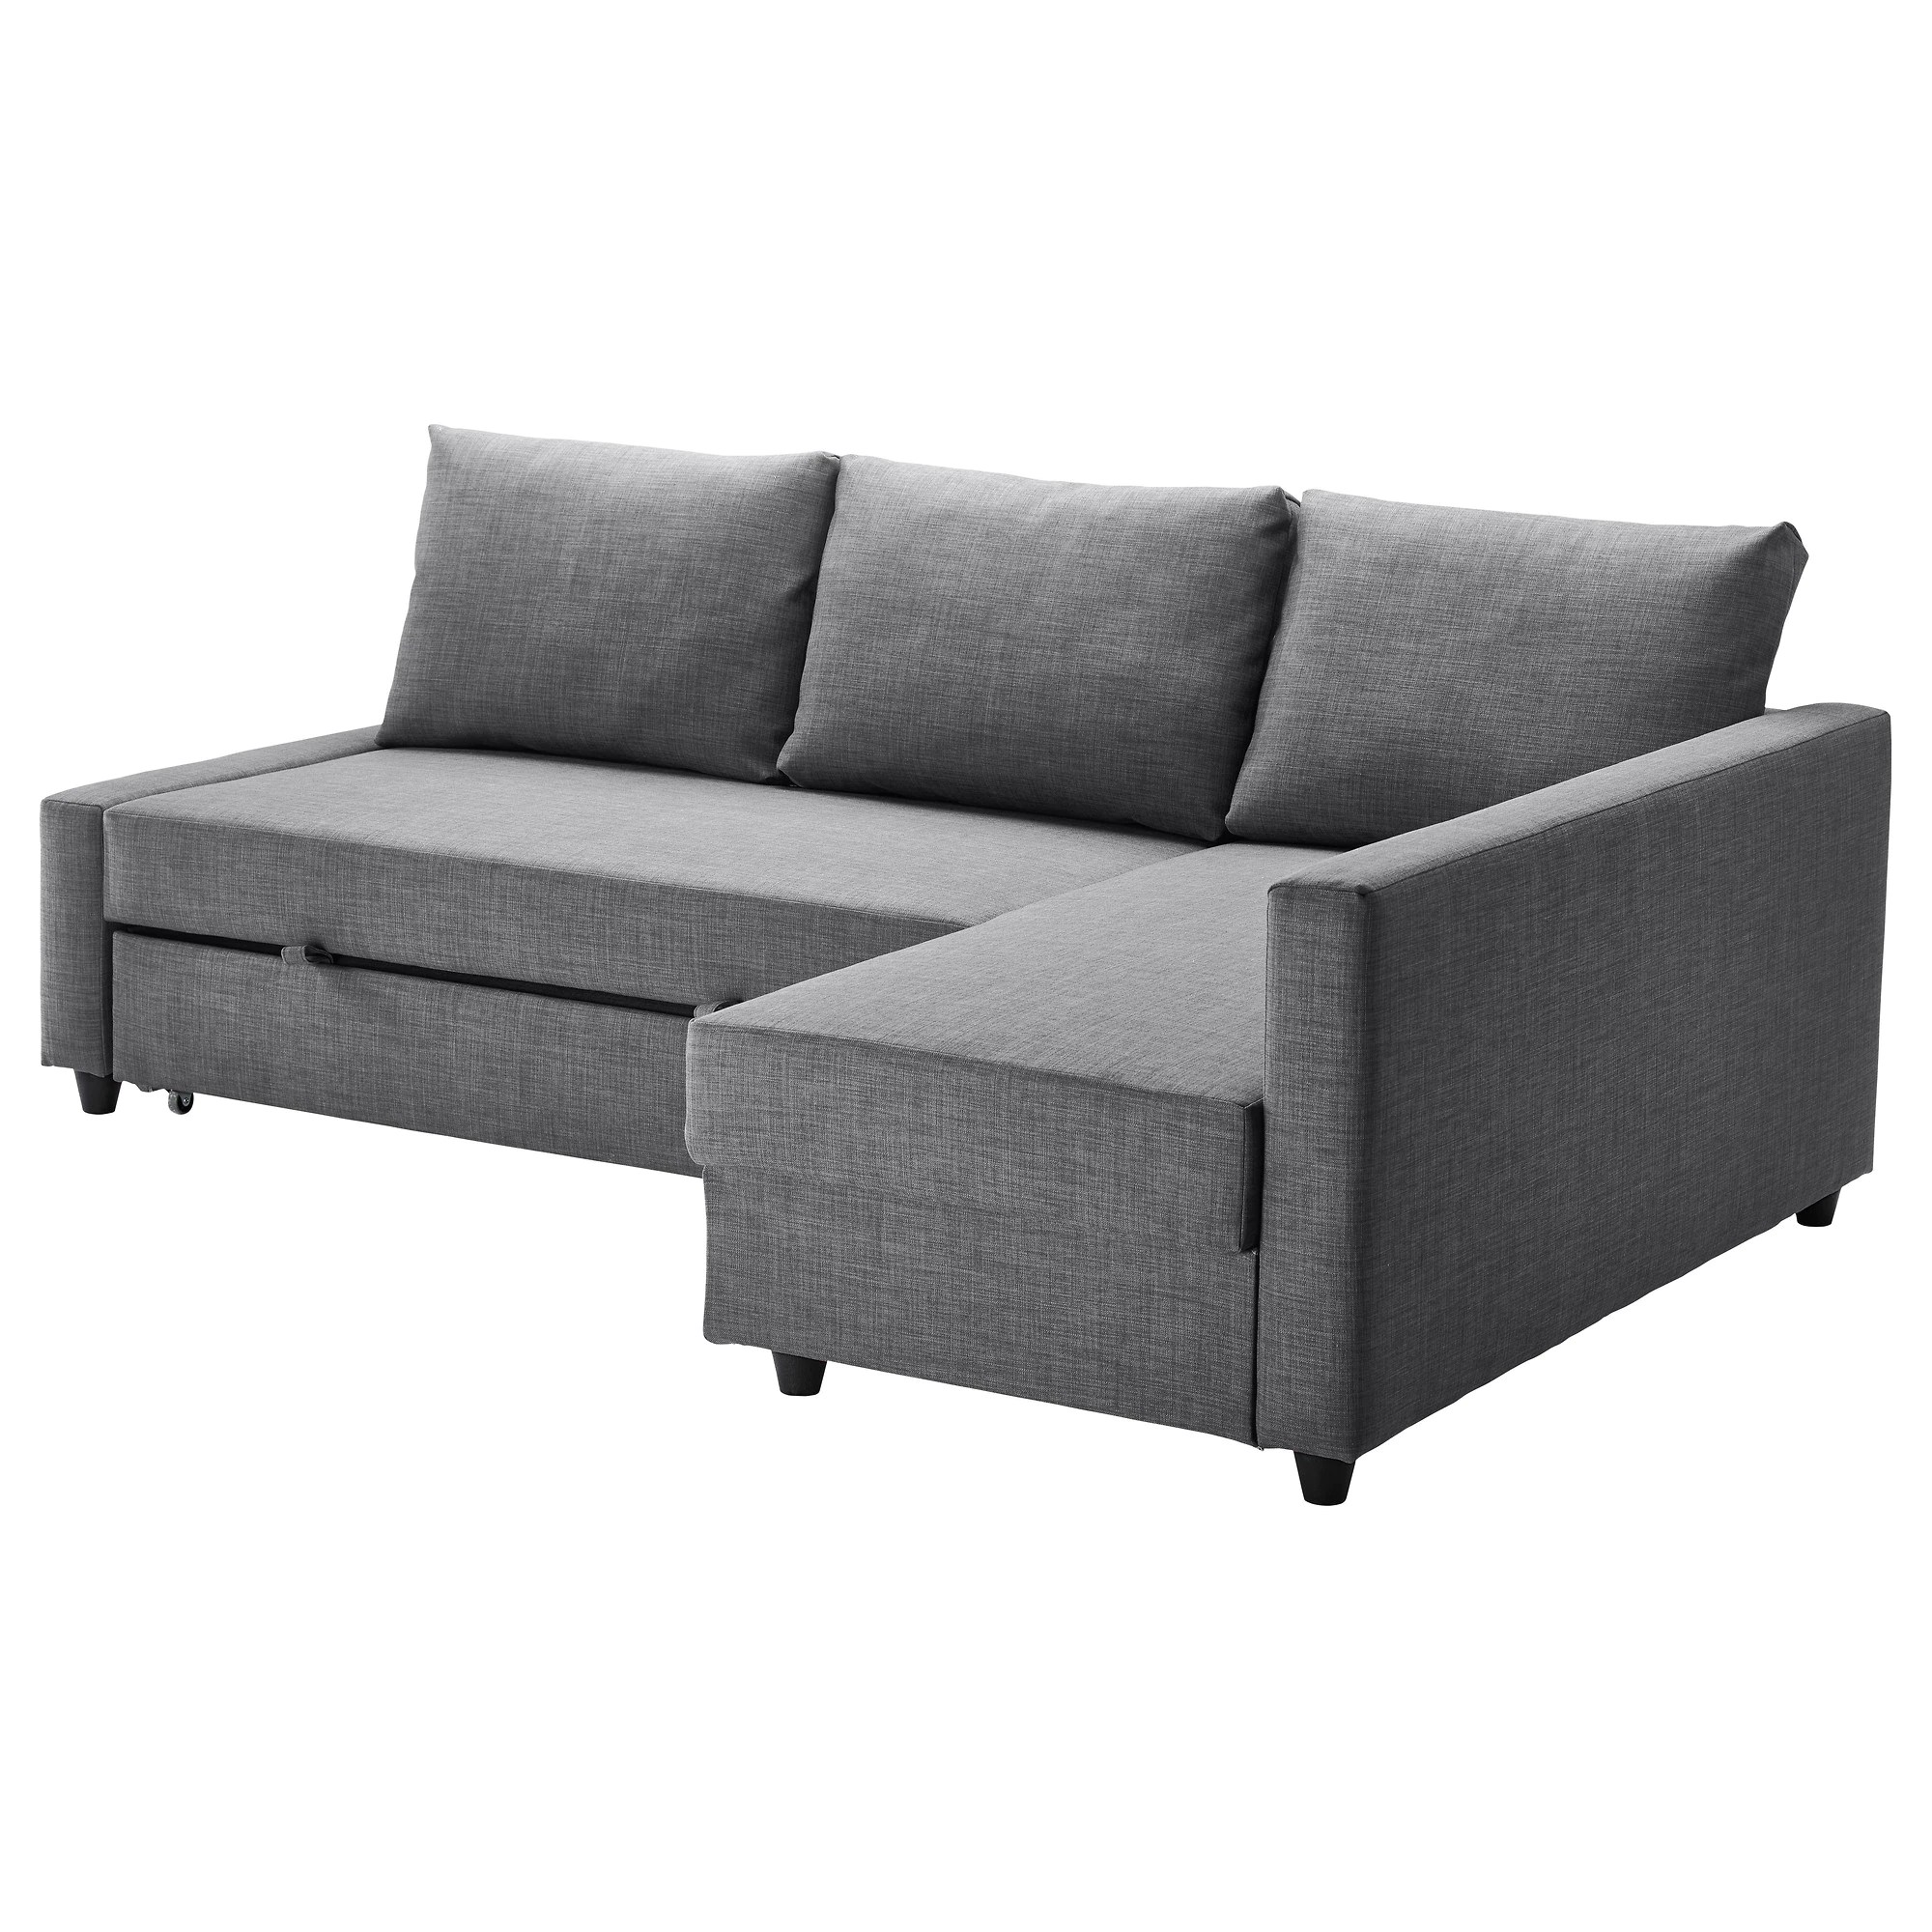 Couch Ikea Friheten Sleeper Sectional 3 Seat W Storage Skiftebo Dark Gray